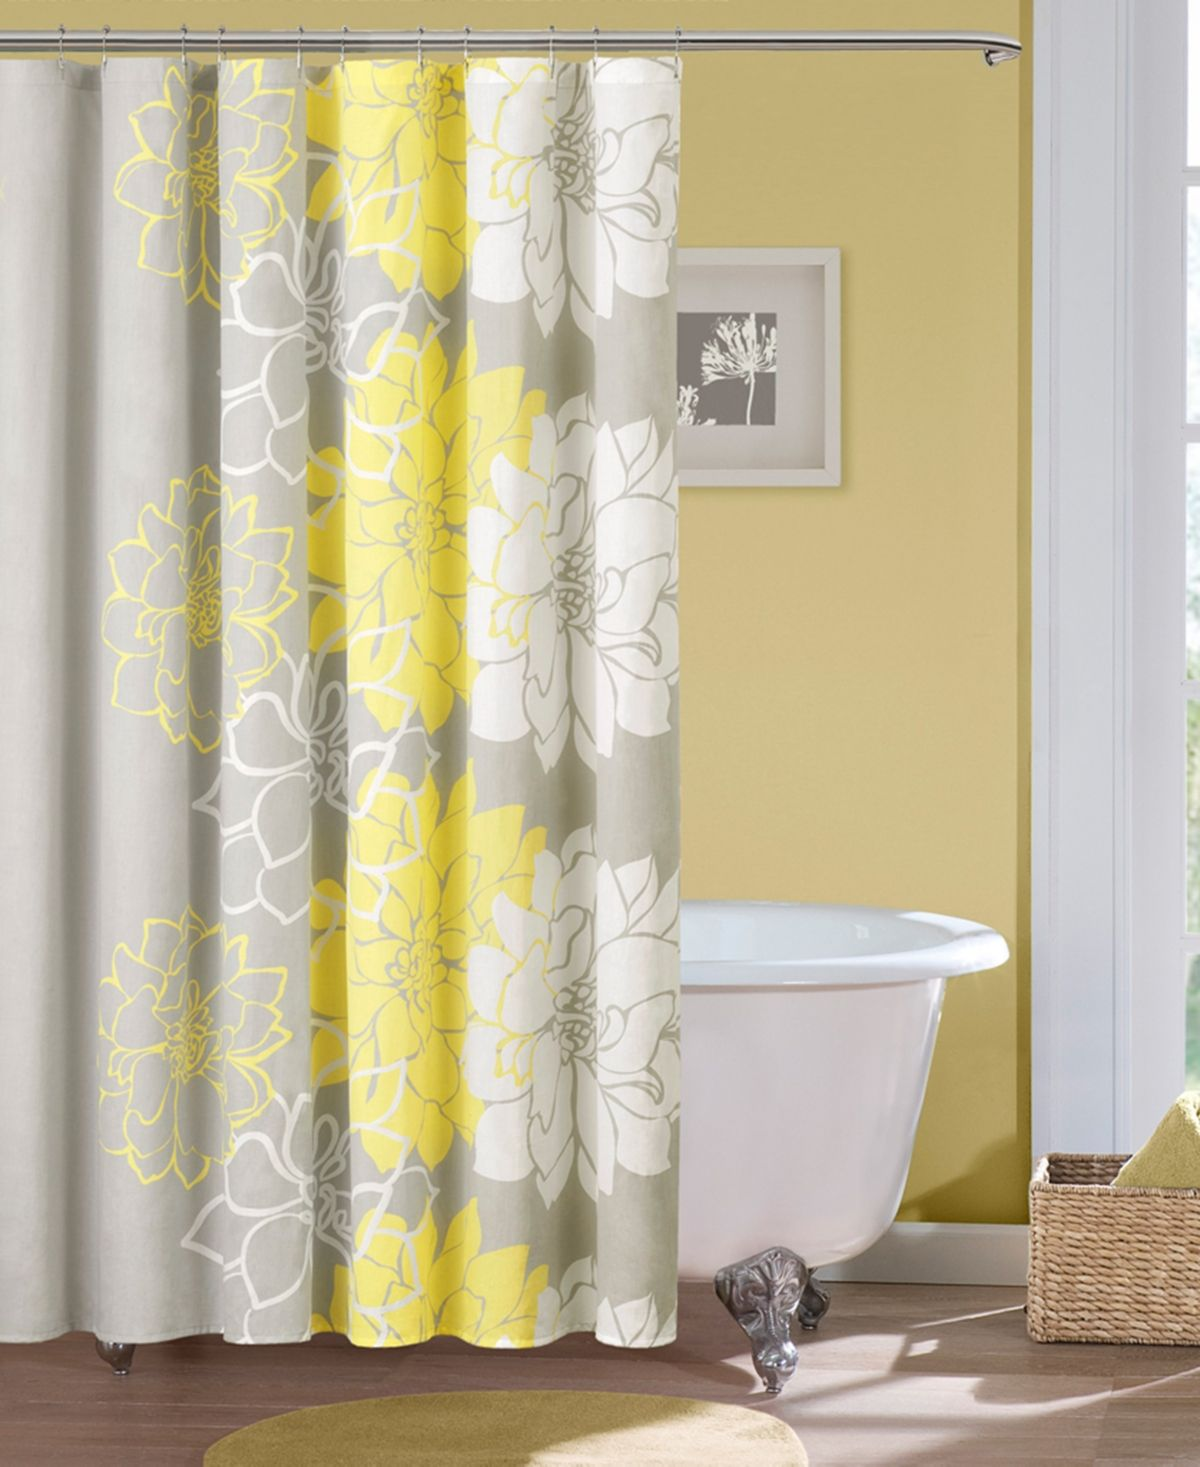 Madison Park Lola 72 X 72 100 Cotton Floral Printed Shower Curtain Reviews Shower Curtains Bed Bath Macy S Yellow Shower Curtains Gray Shower Curtains Floral Shower Curtains